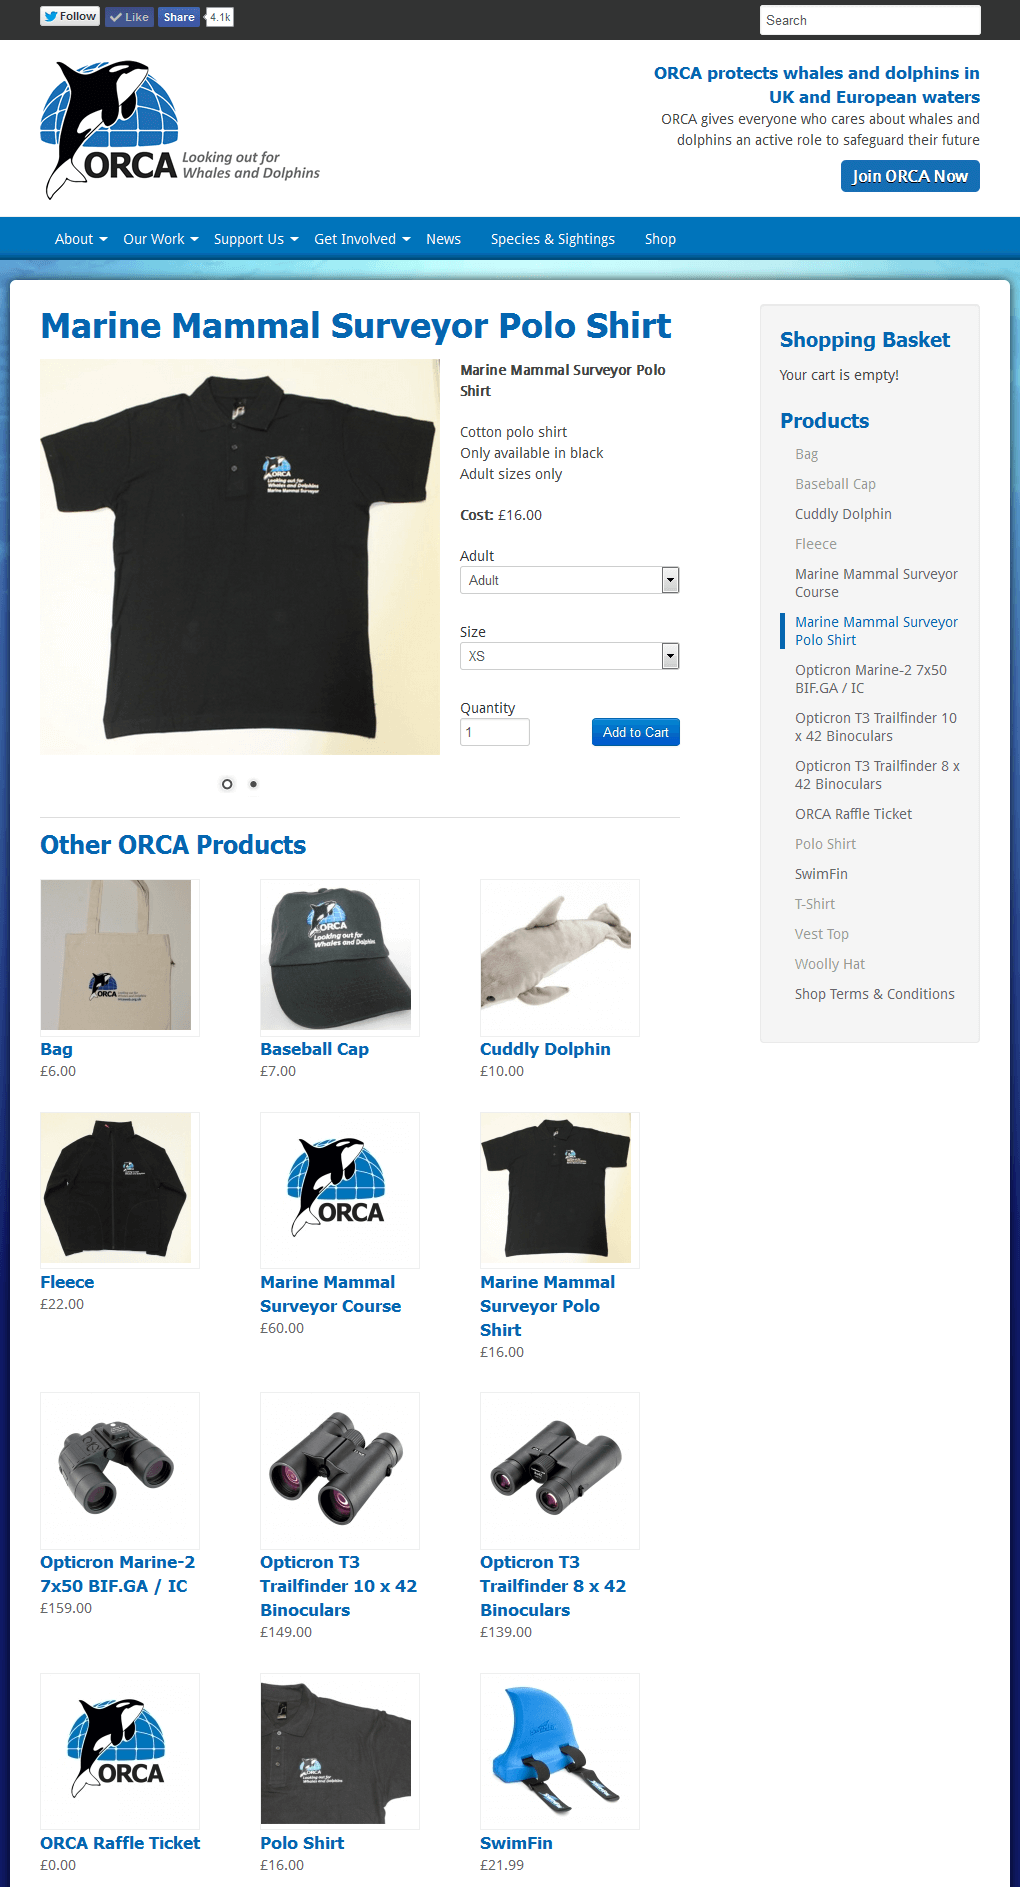 ORCA - Protecting Whales and Dolphins ORCA's online shop to sell merchandise to raise funds